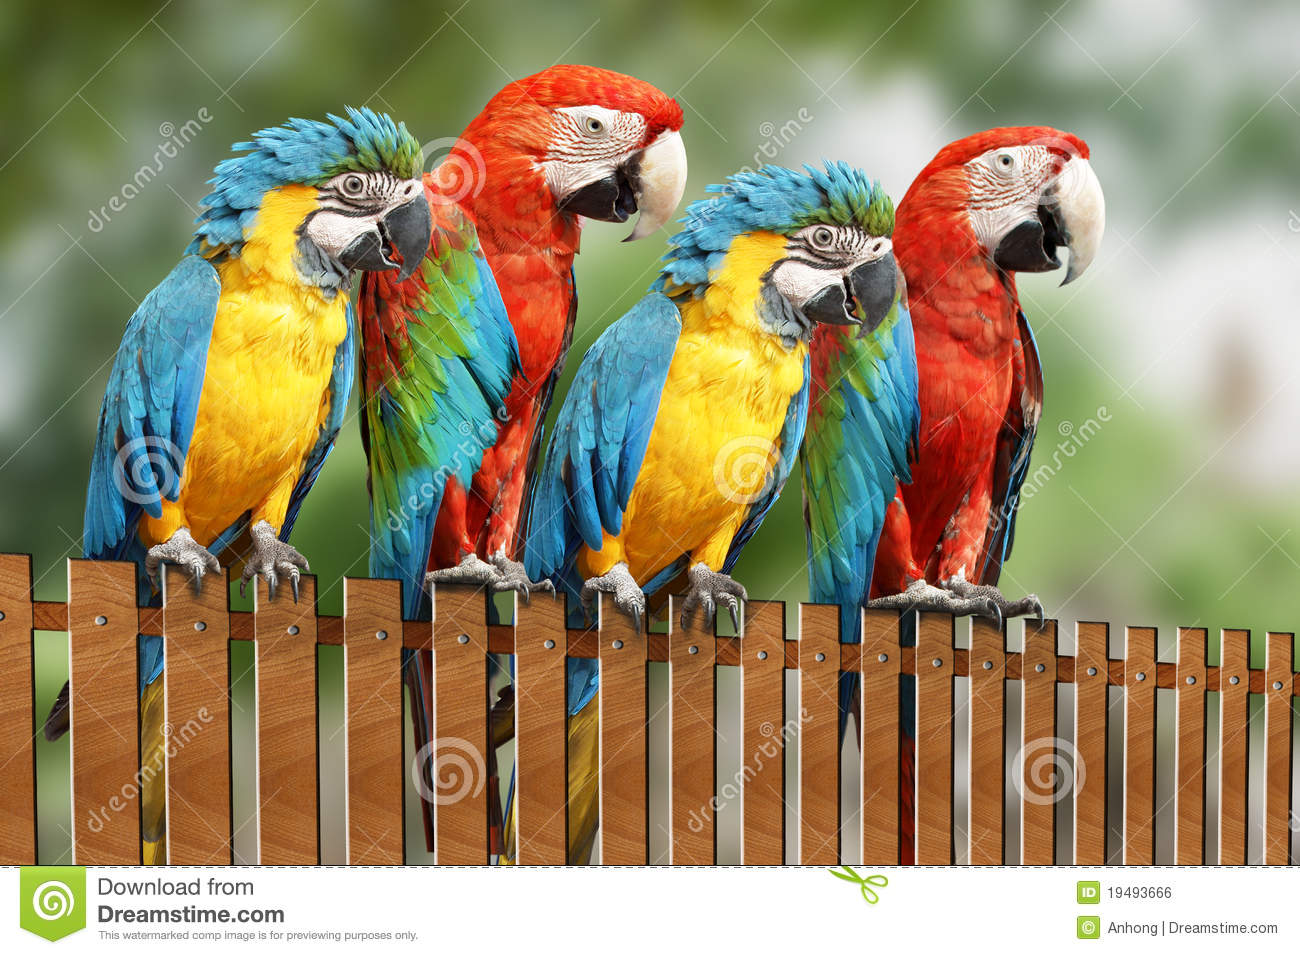 Four Large Parrot Royalty Free Stock Image - Image: 19493666